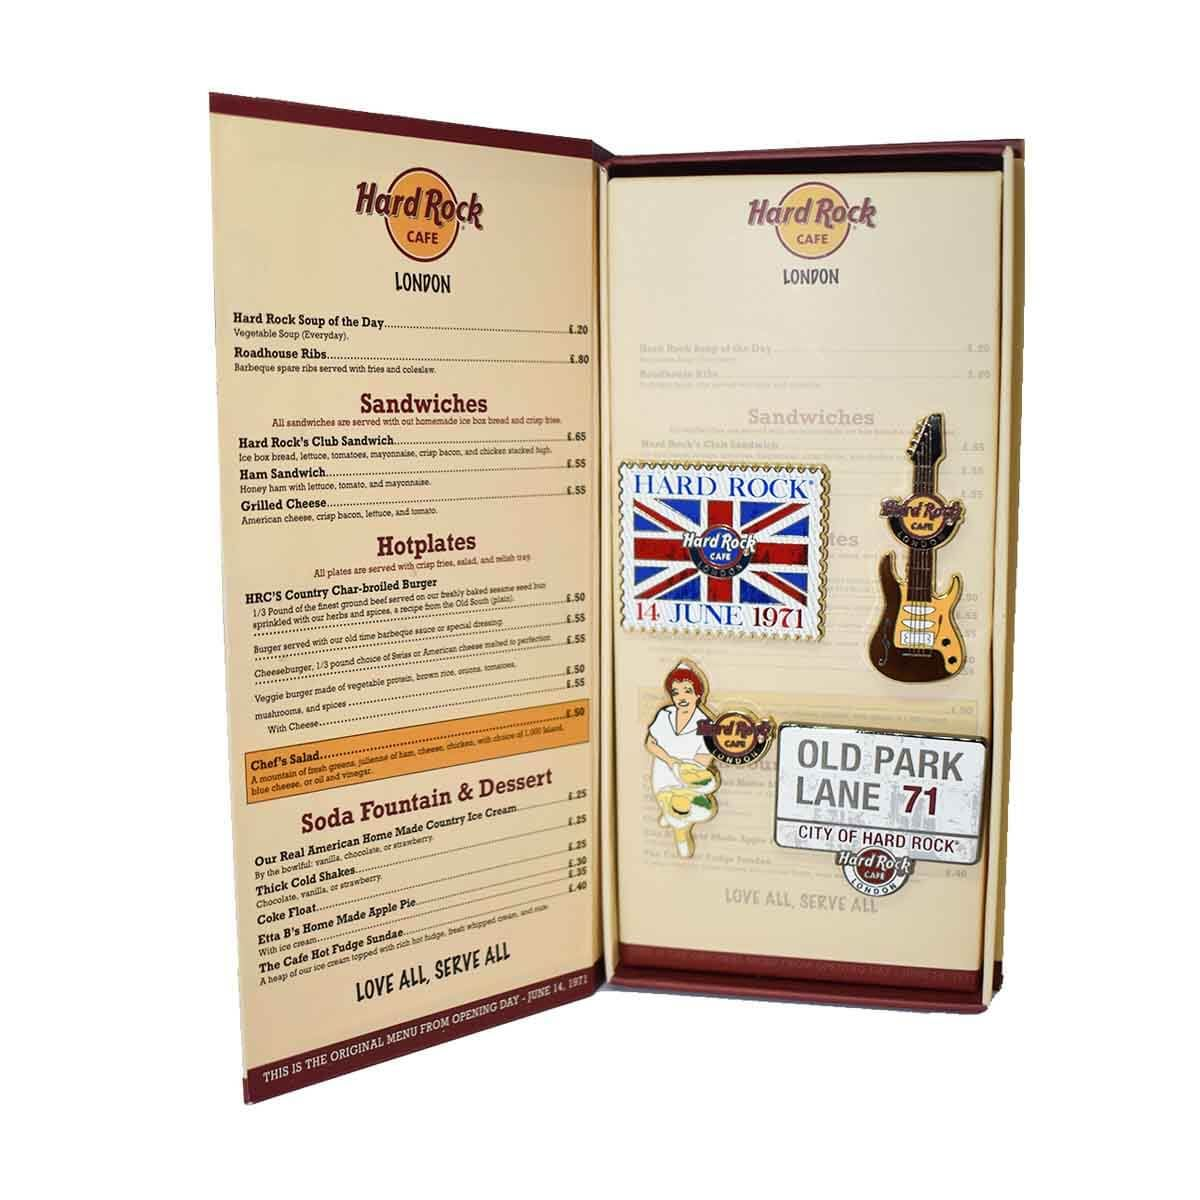 London Menu Pin Box Set 2019